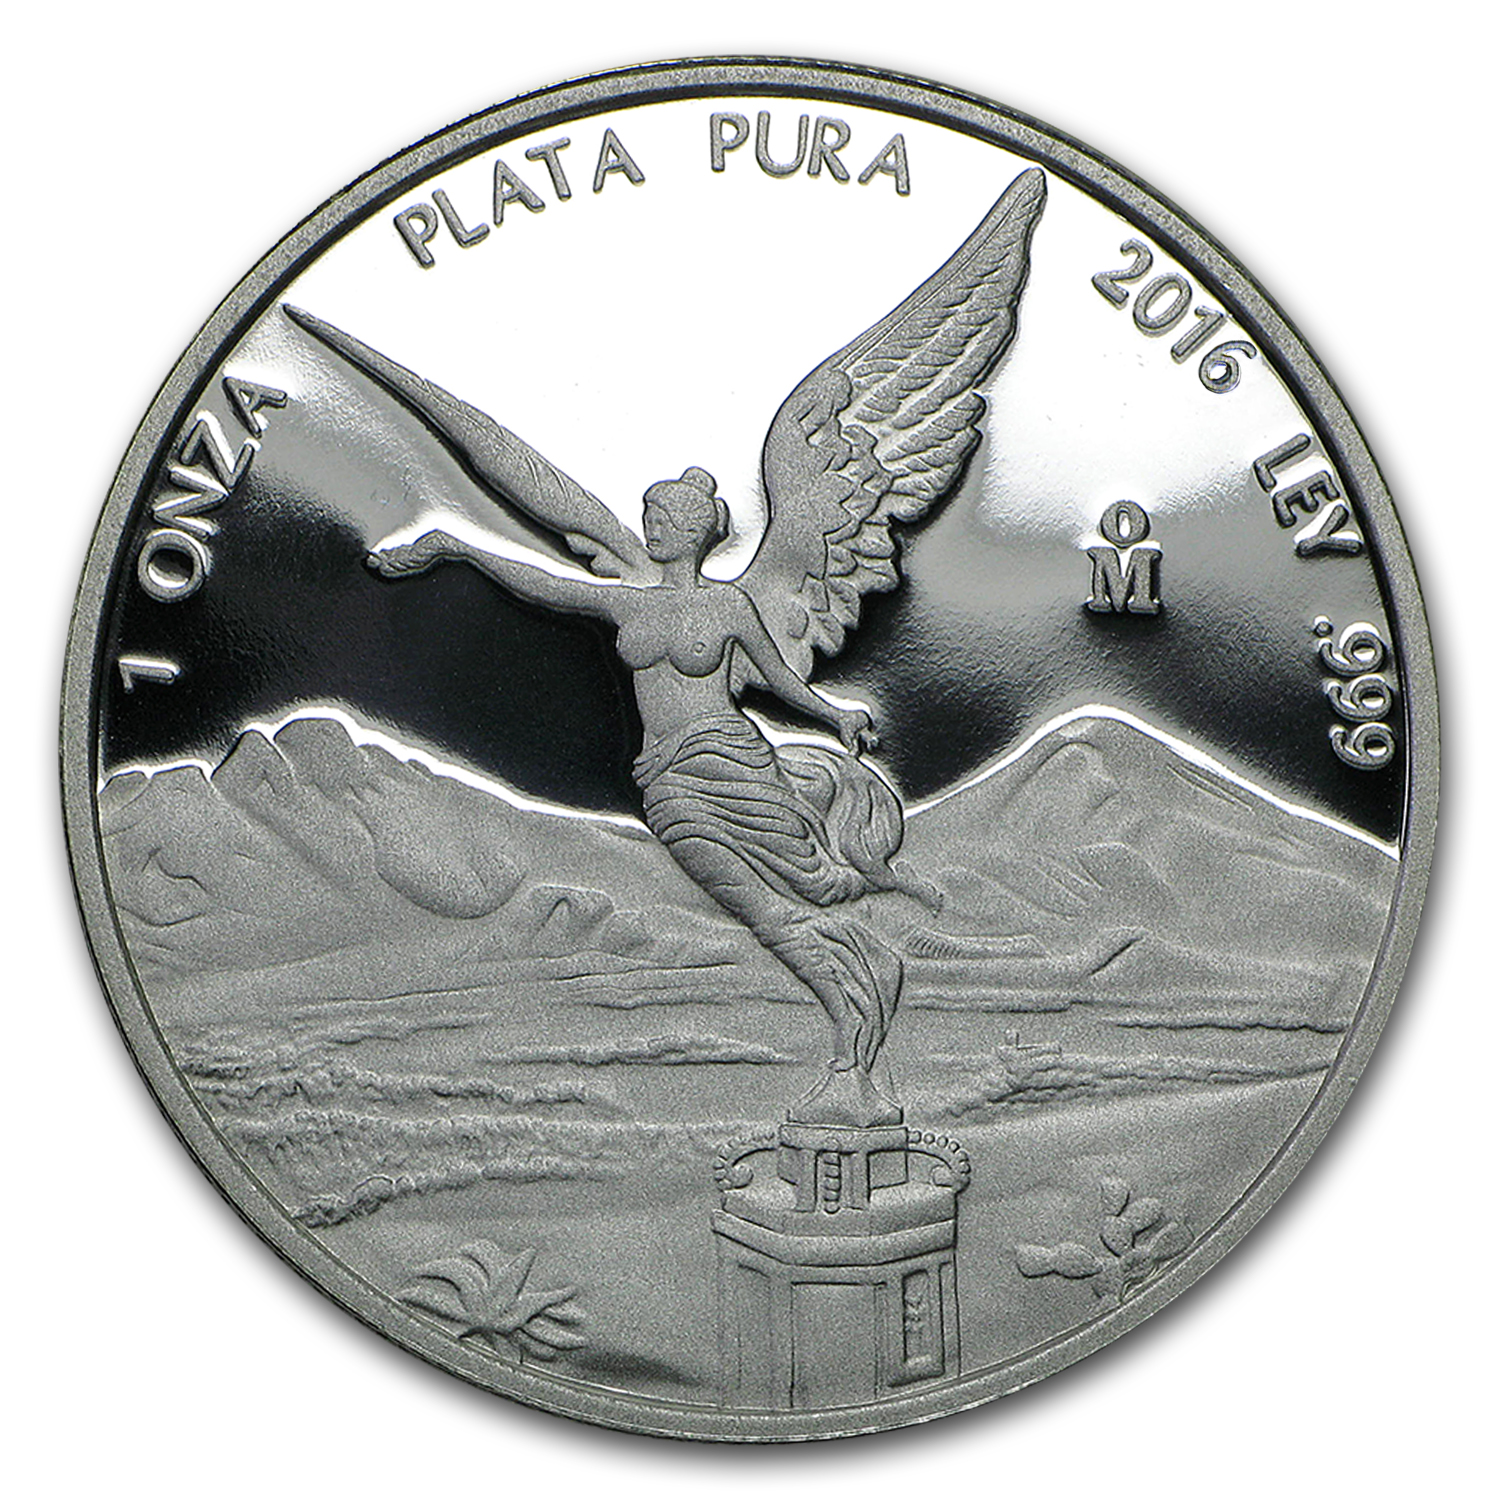 2016 Mexico 1 oz Silver Libertad Proof (In Capsule)